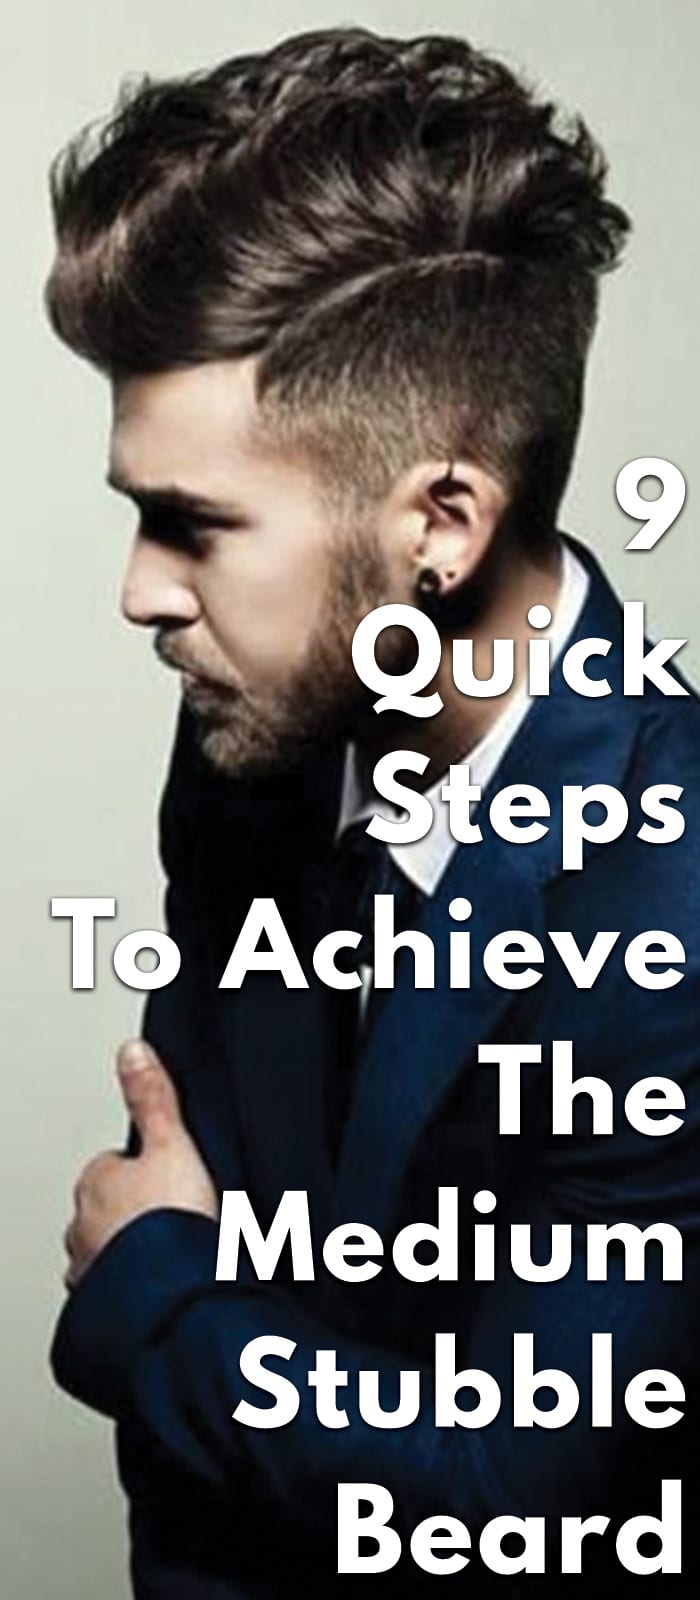 9-Quick-Steps-To-Achieve-The-Medium-Stubble-Beard